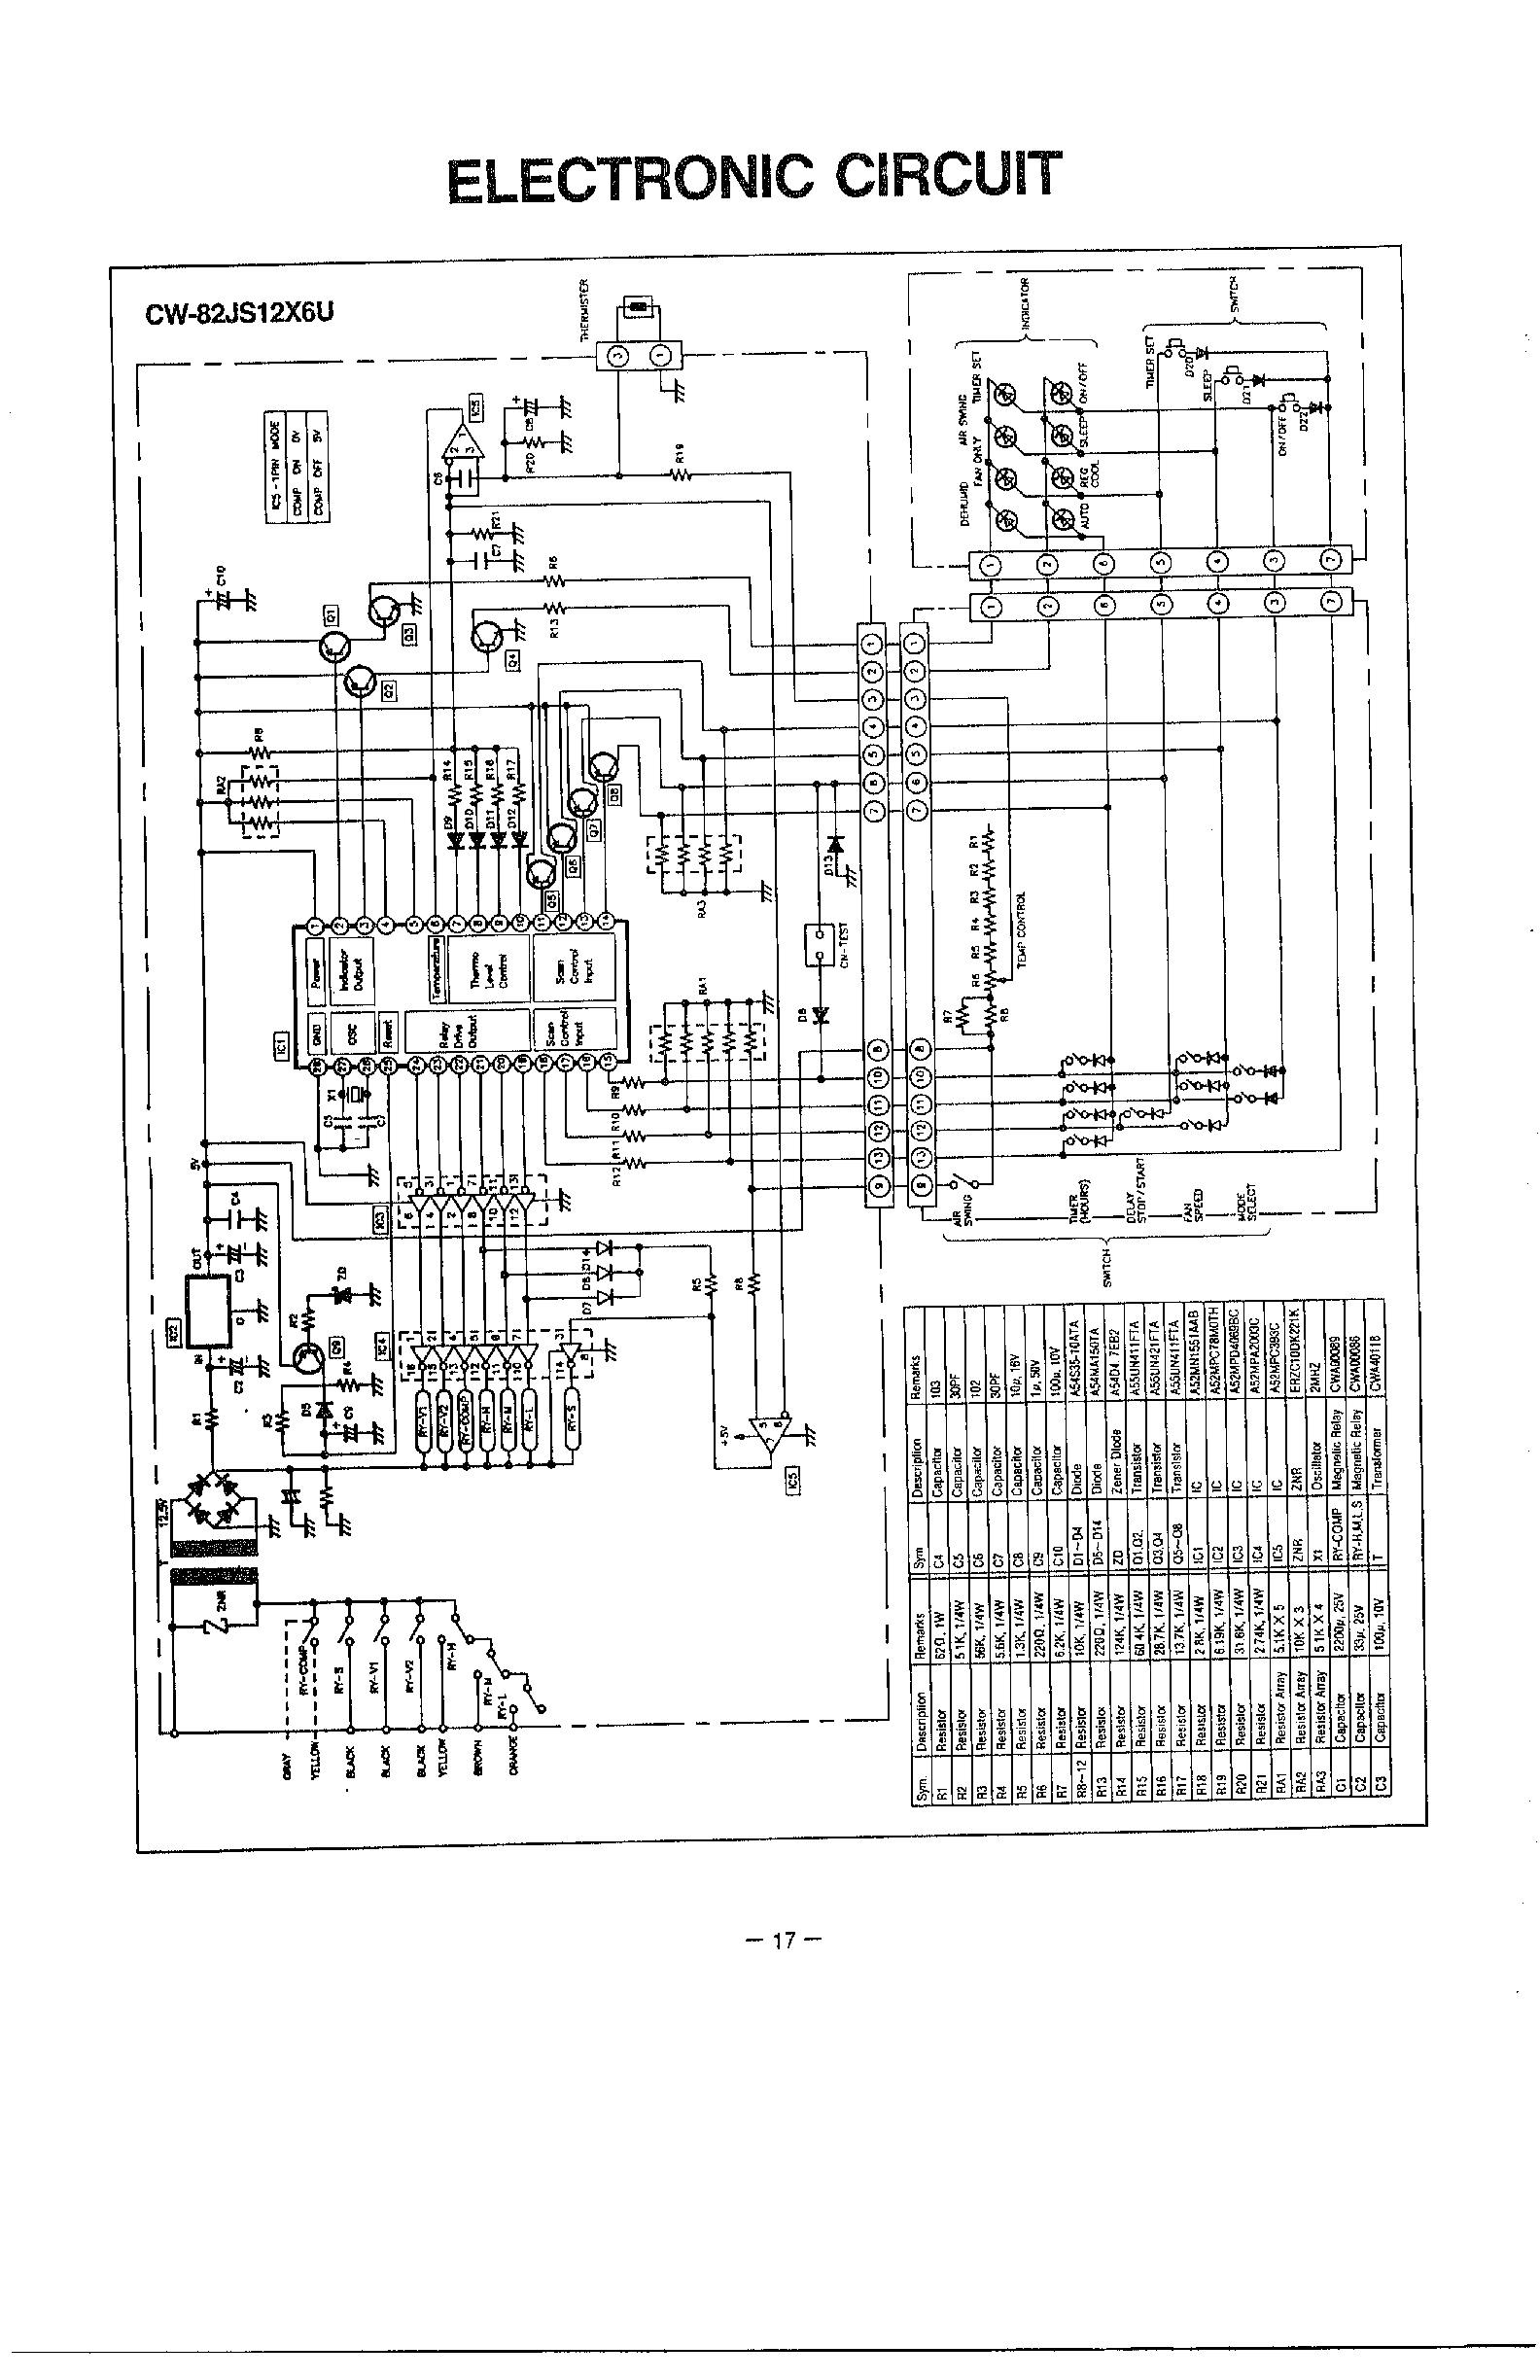 10kw Heat Strip Wiring Diagram Lennox Electric Furnace